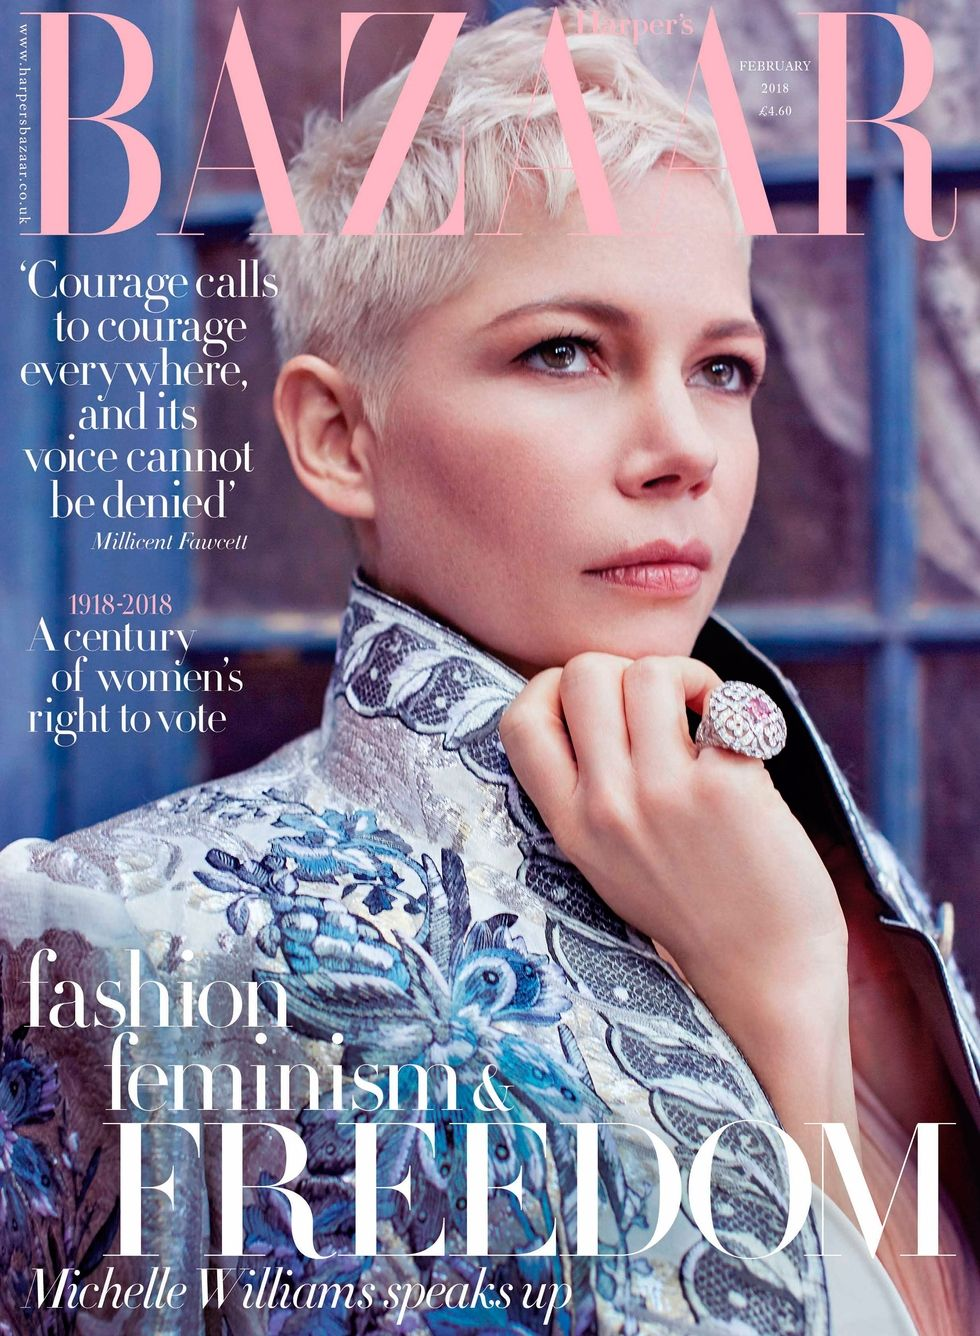 2e1e4aa4d2d Regular readers will know that I stan hard for Michelle Williams